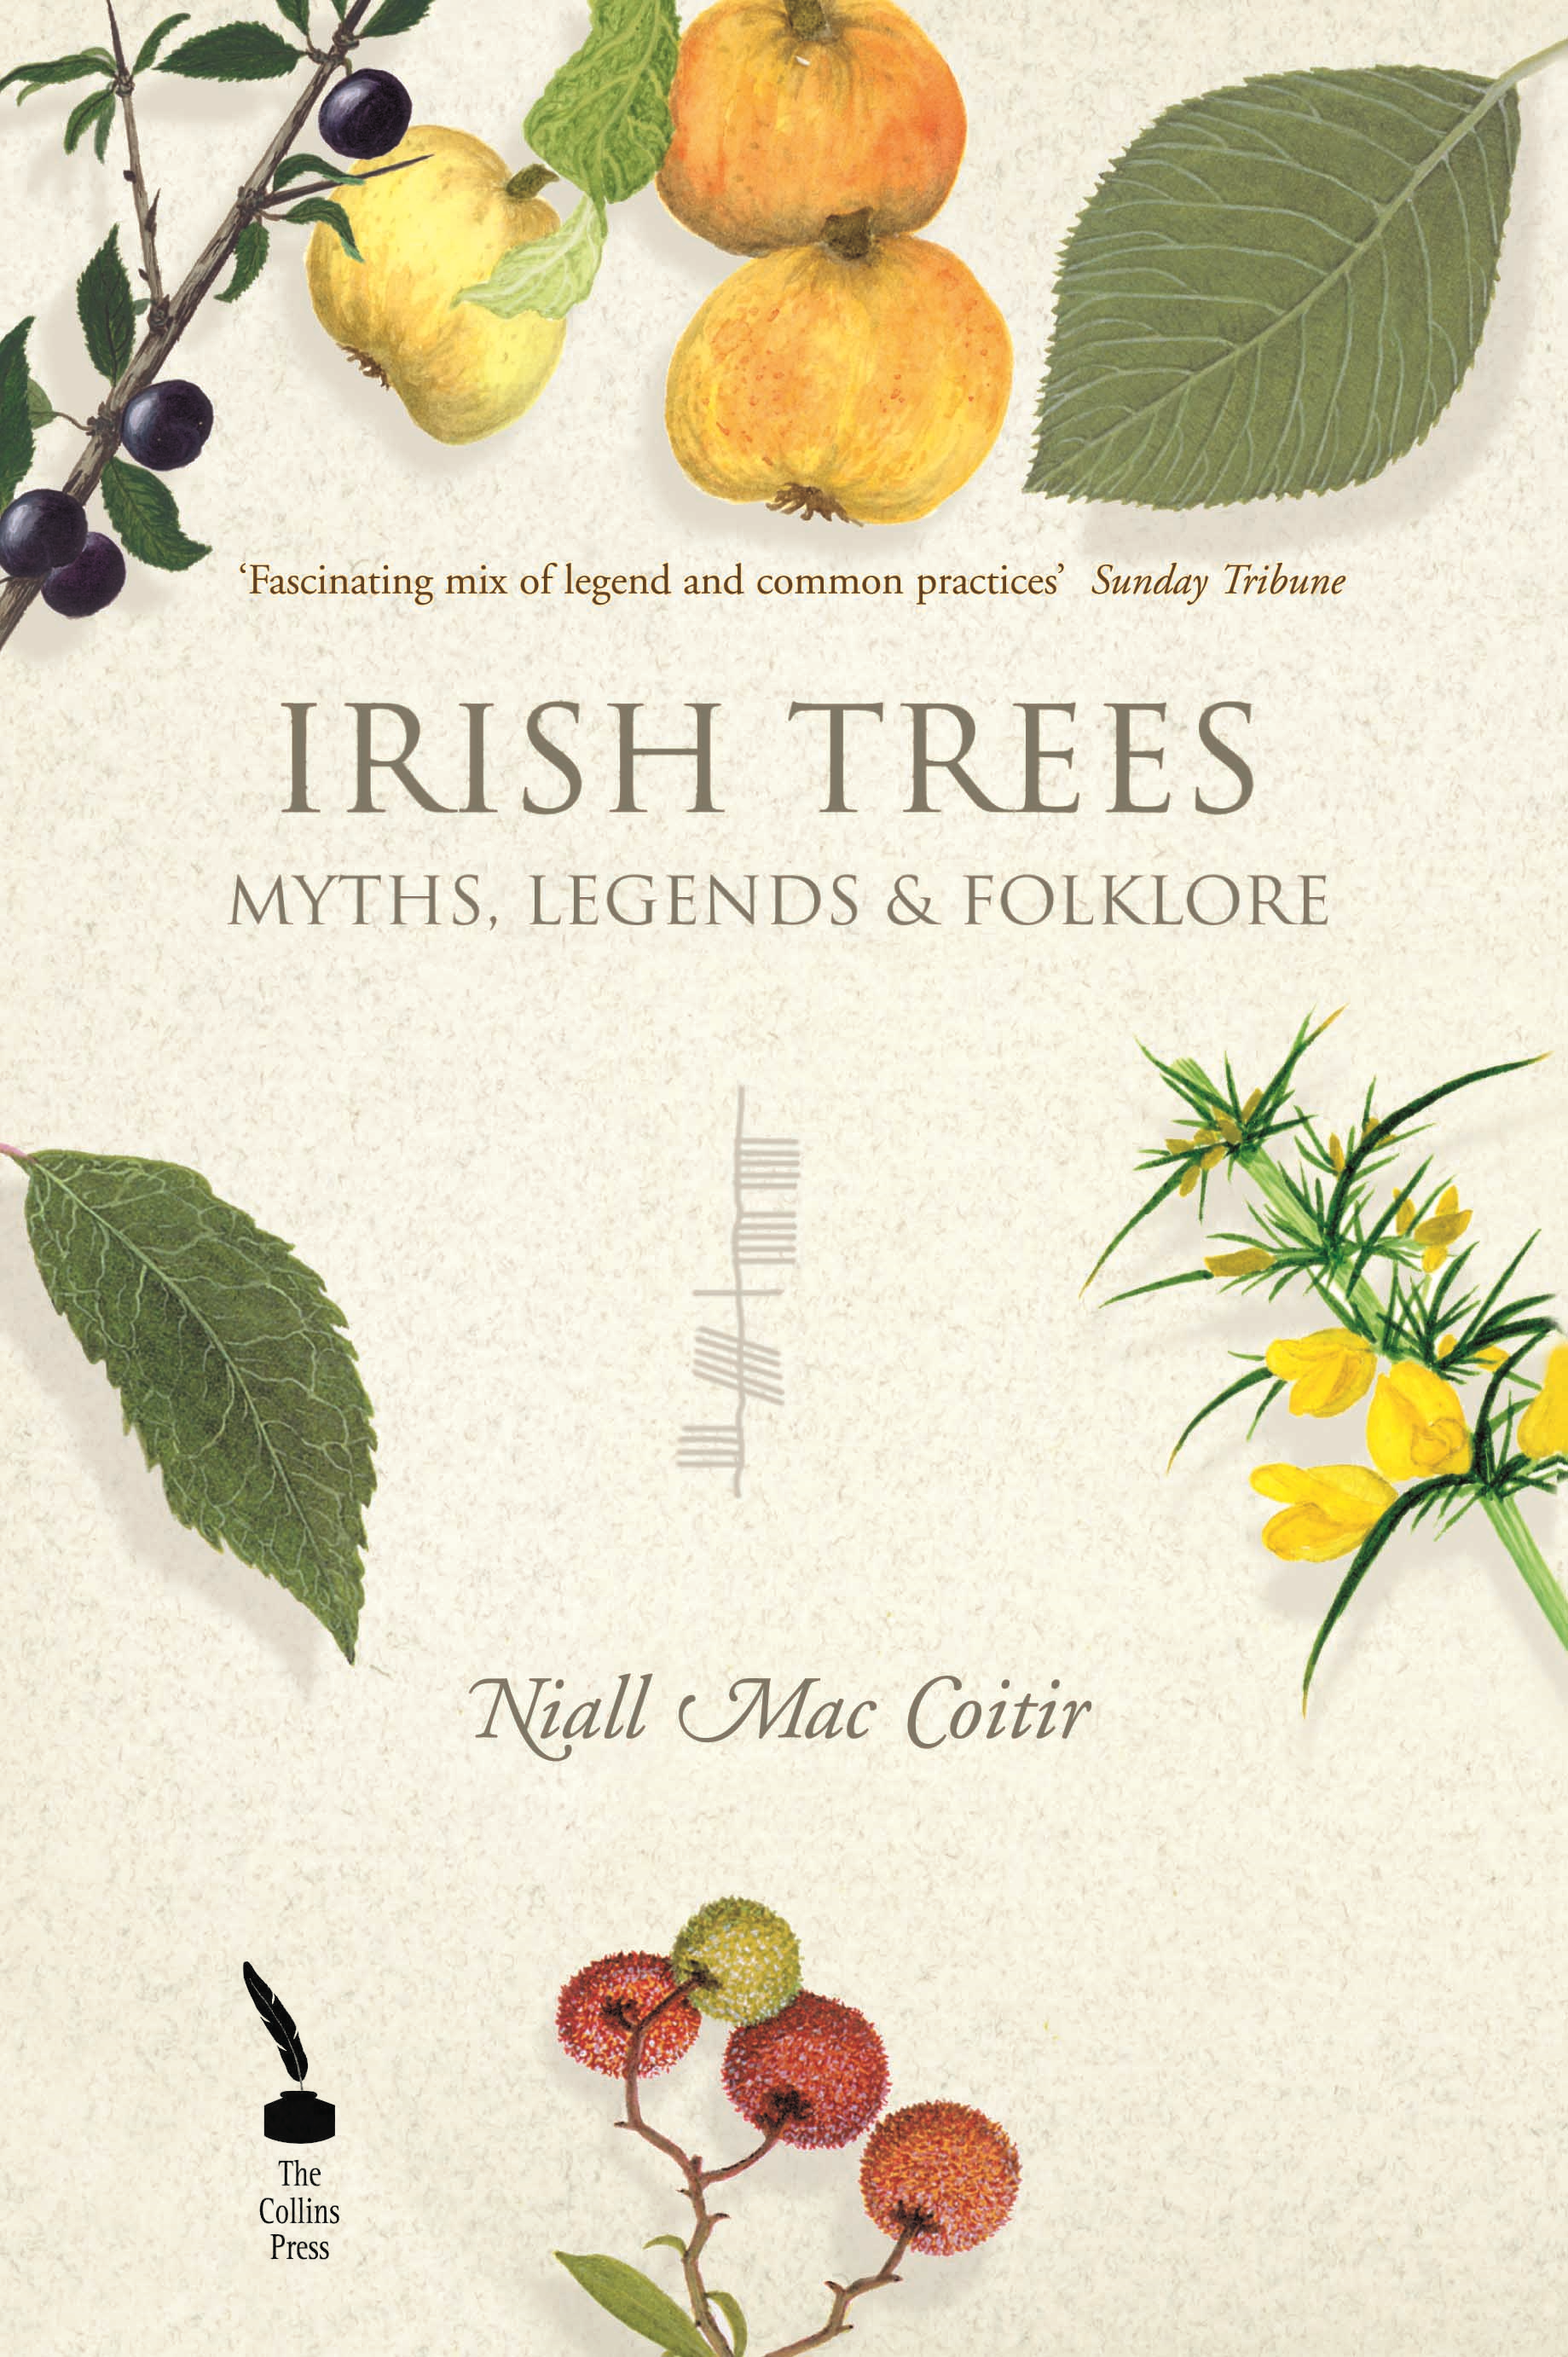 Irish Trees – Myths, Legends & Folklore